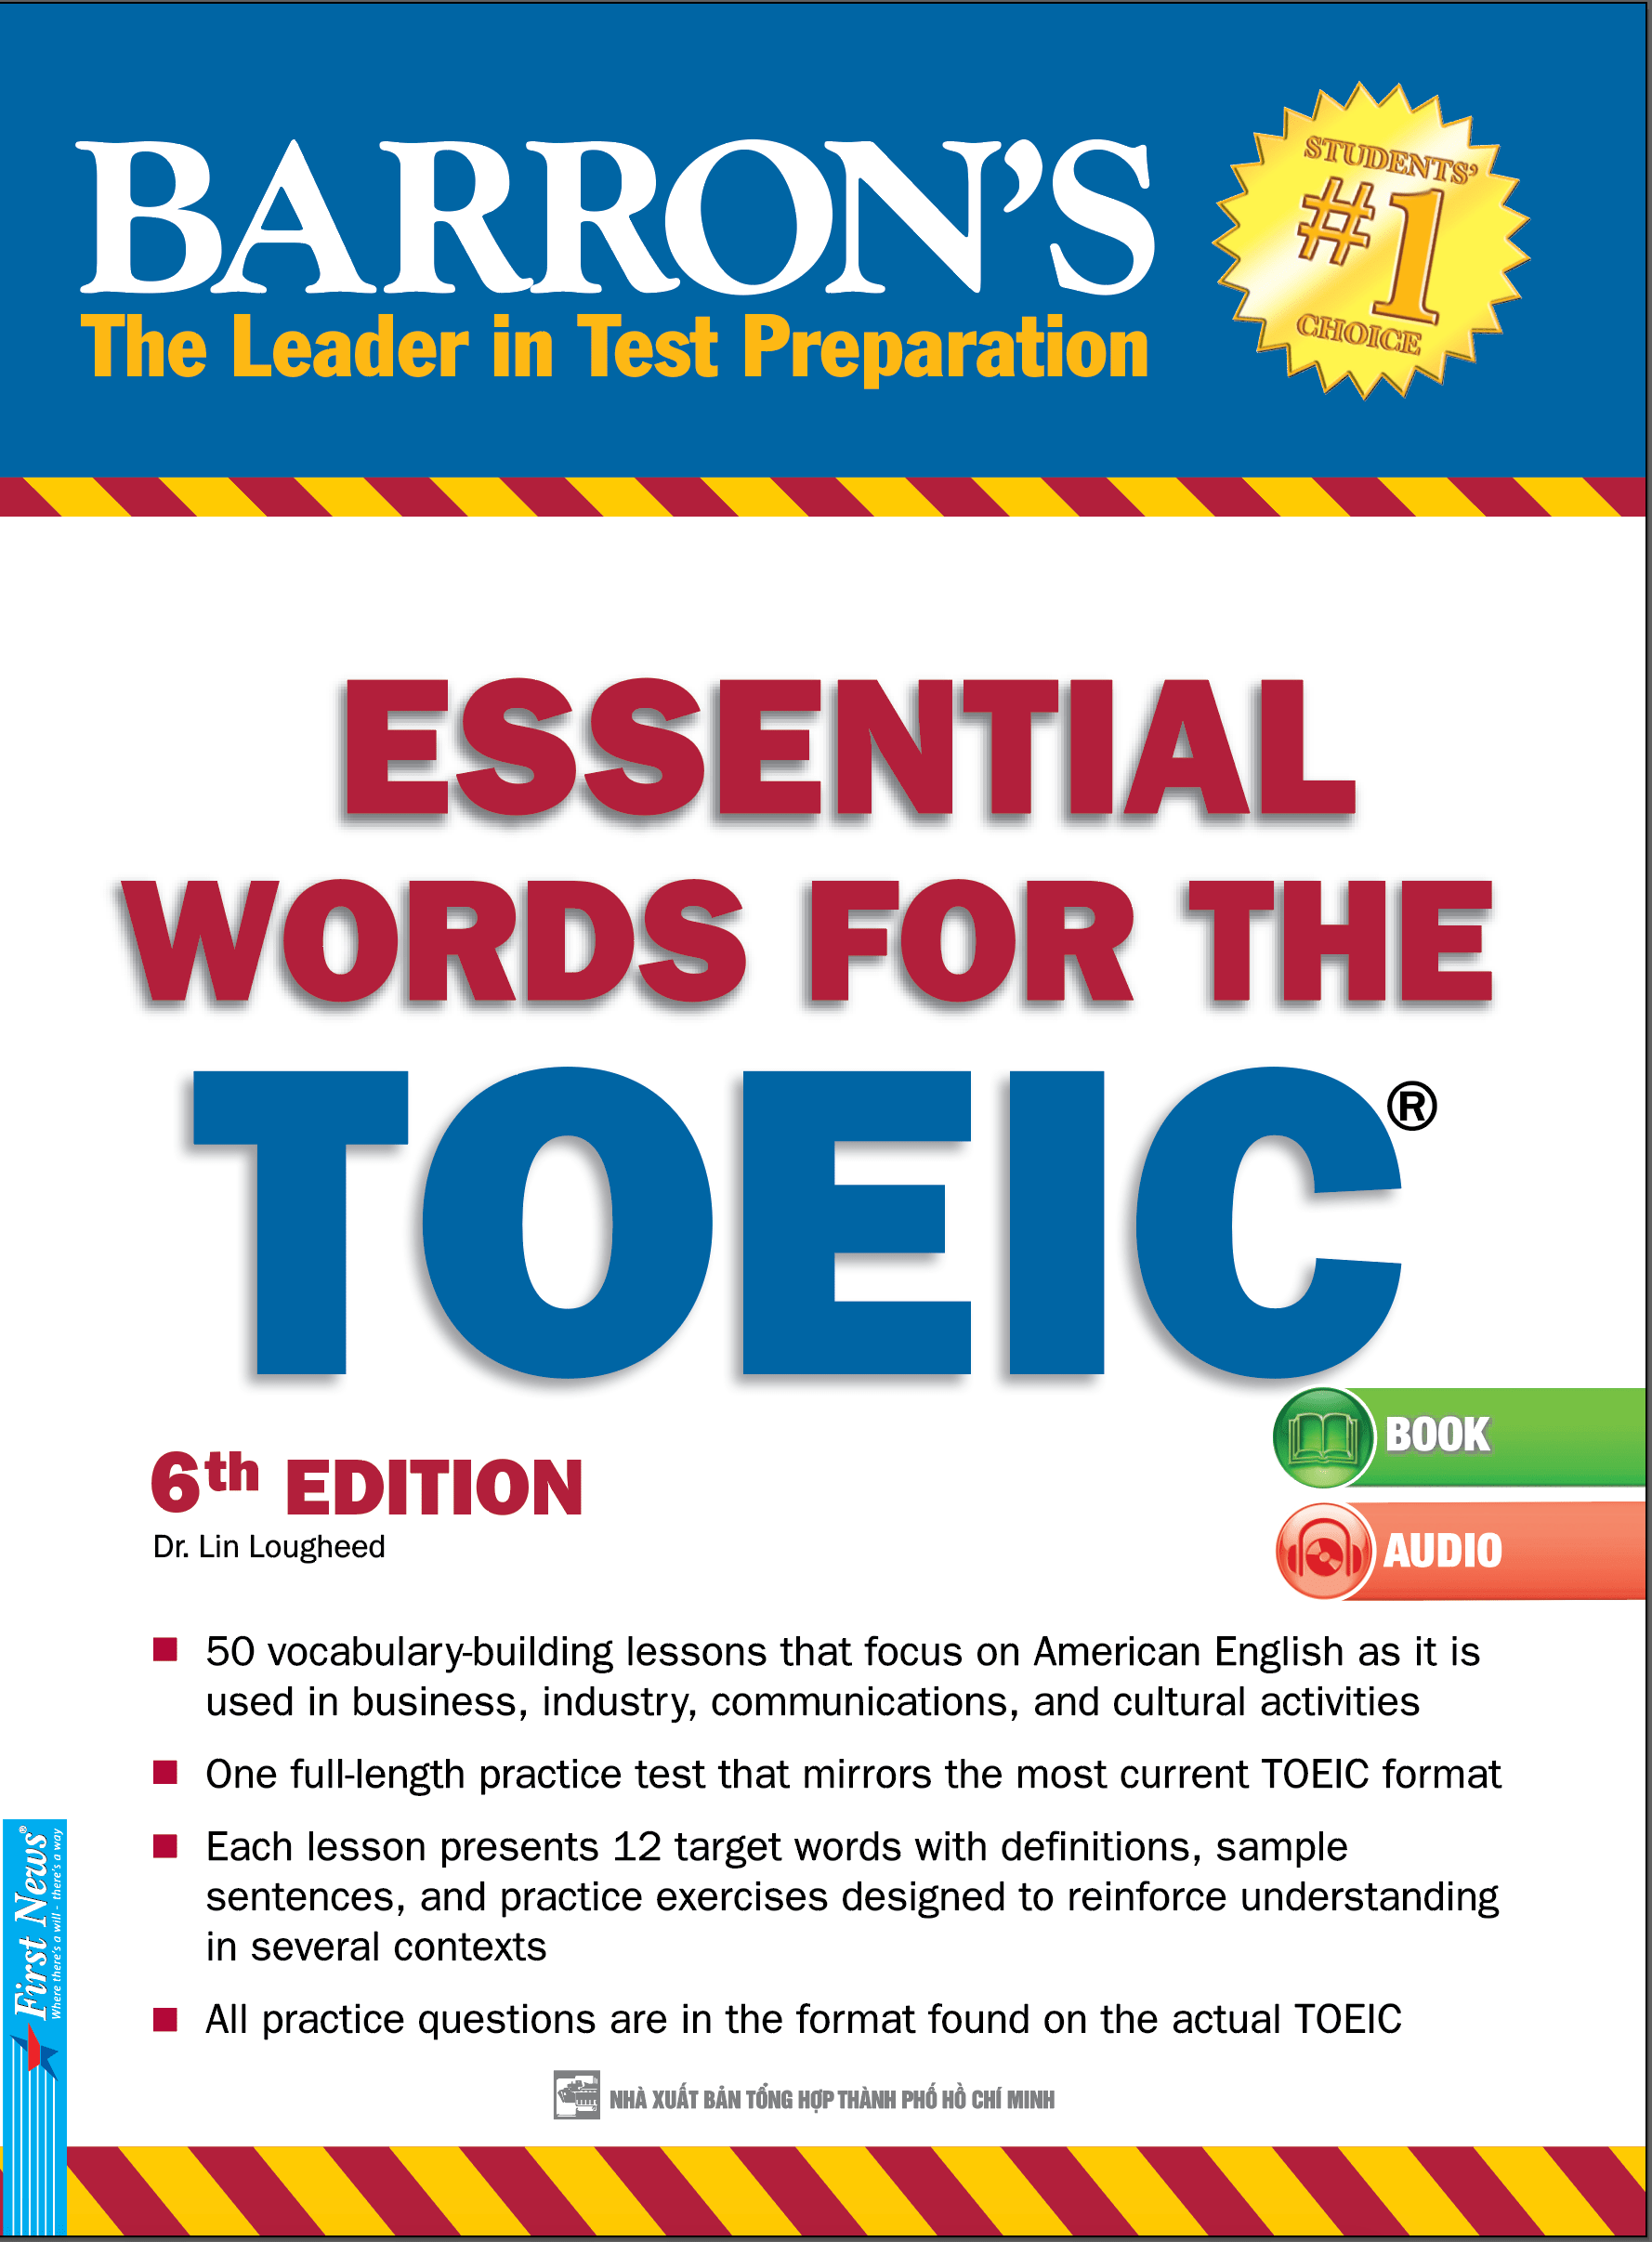 BARRON'S ESSENTIAL WORDS FOR THE TOEIC - 6TH EDITION